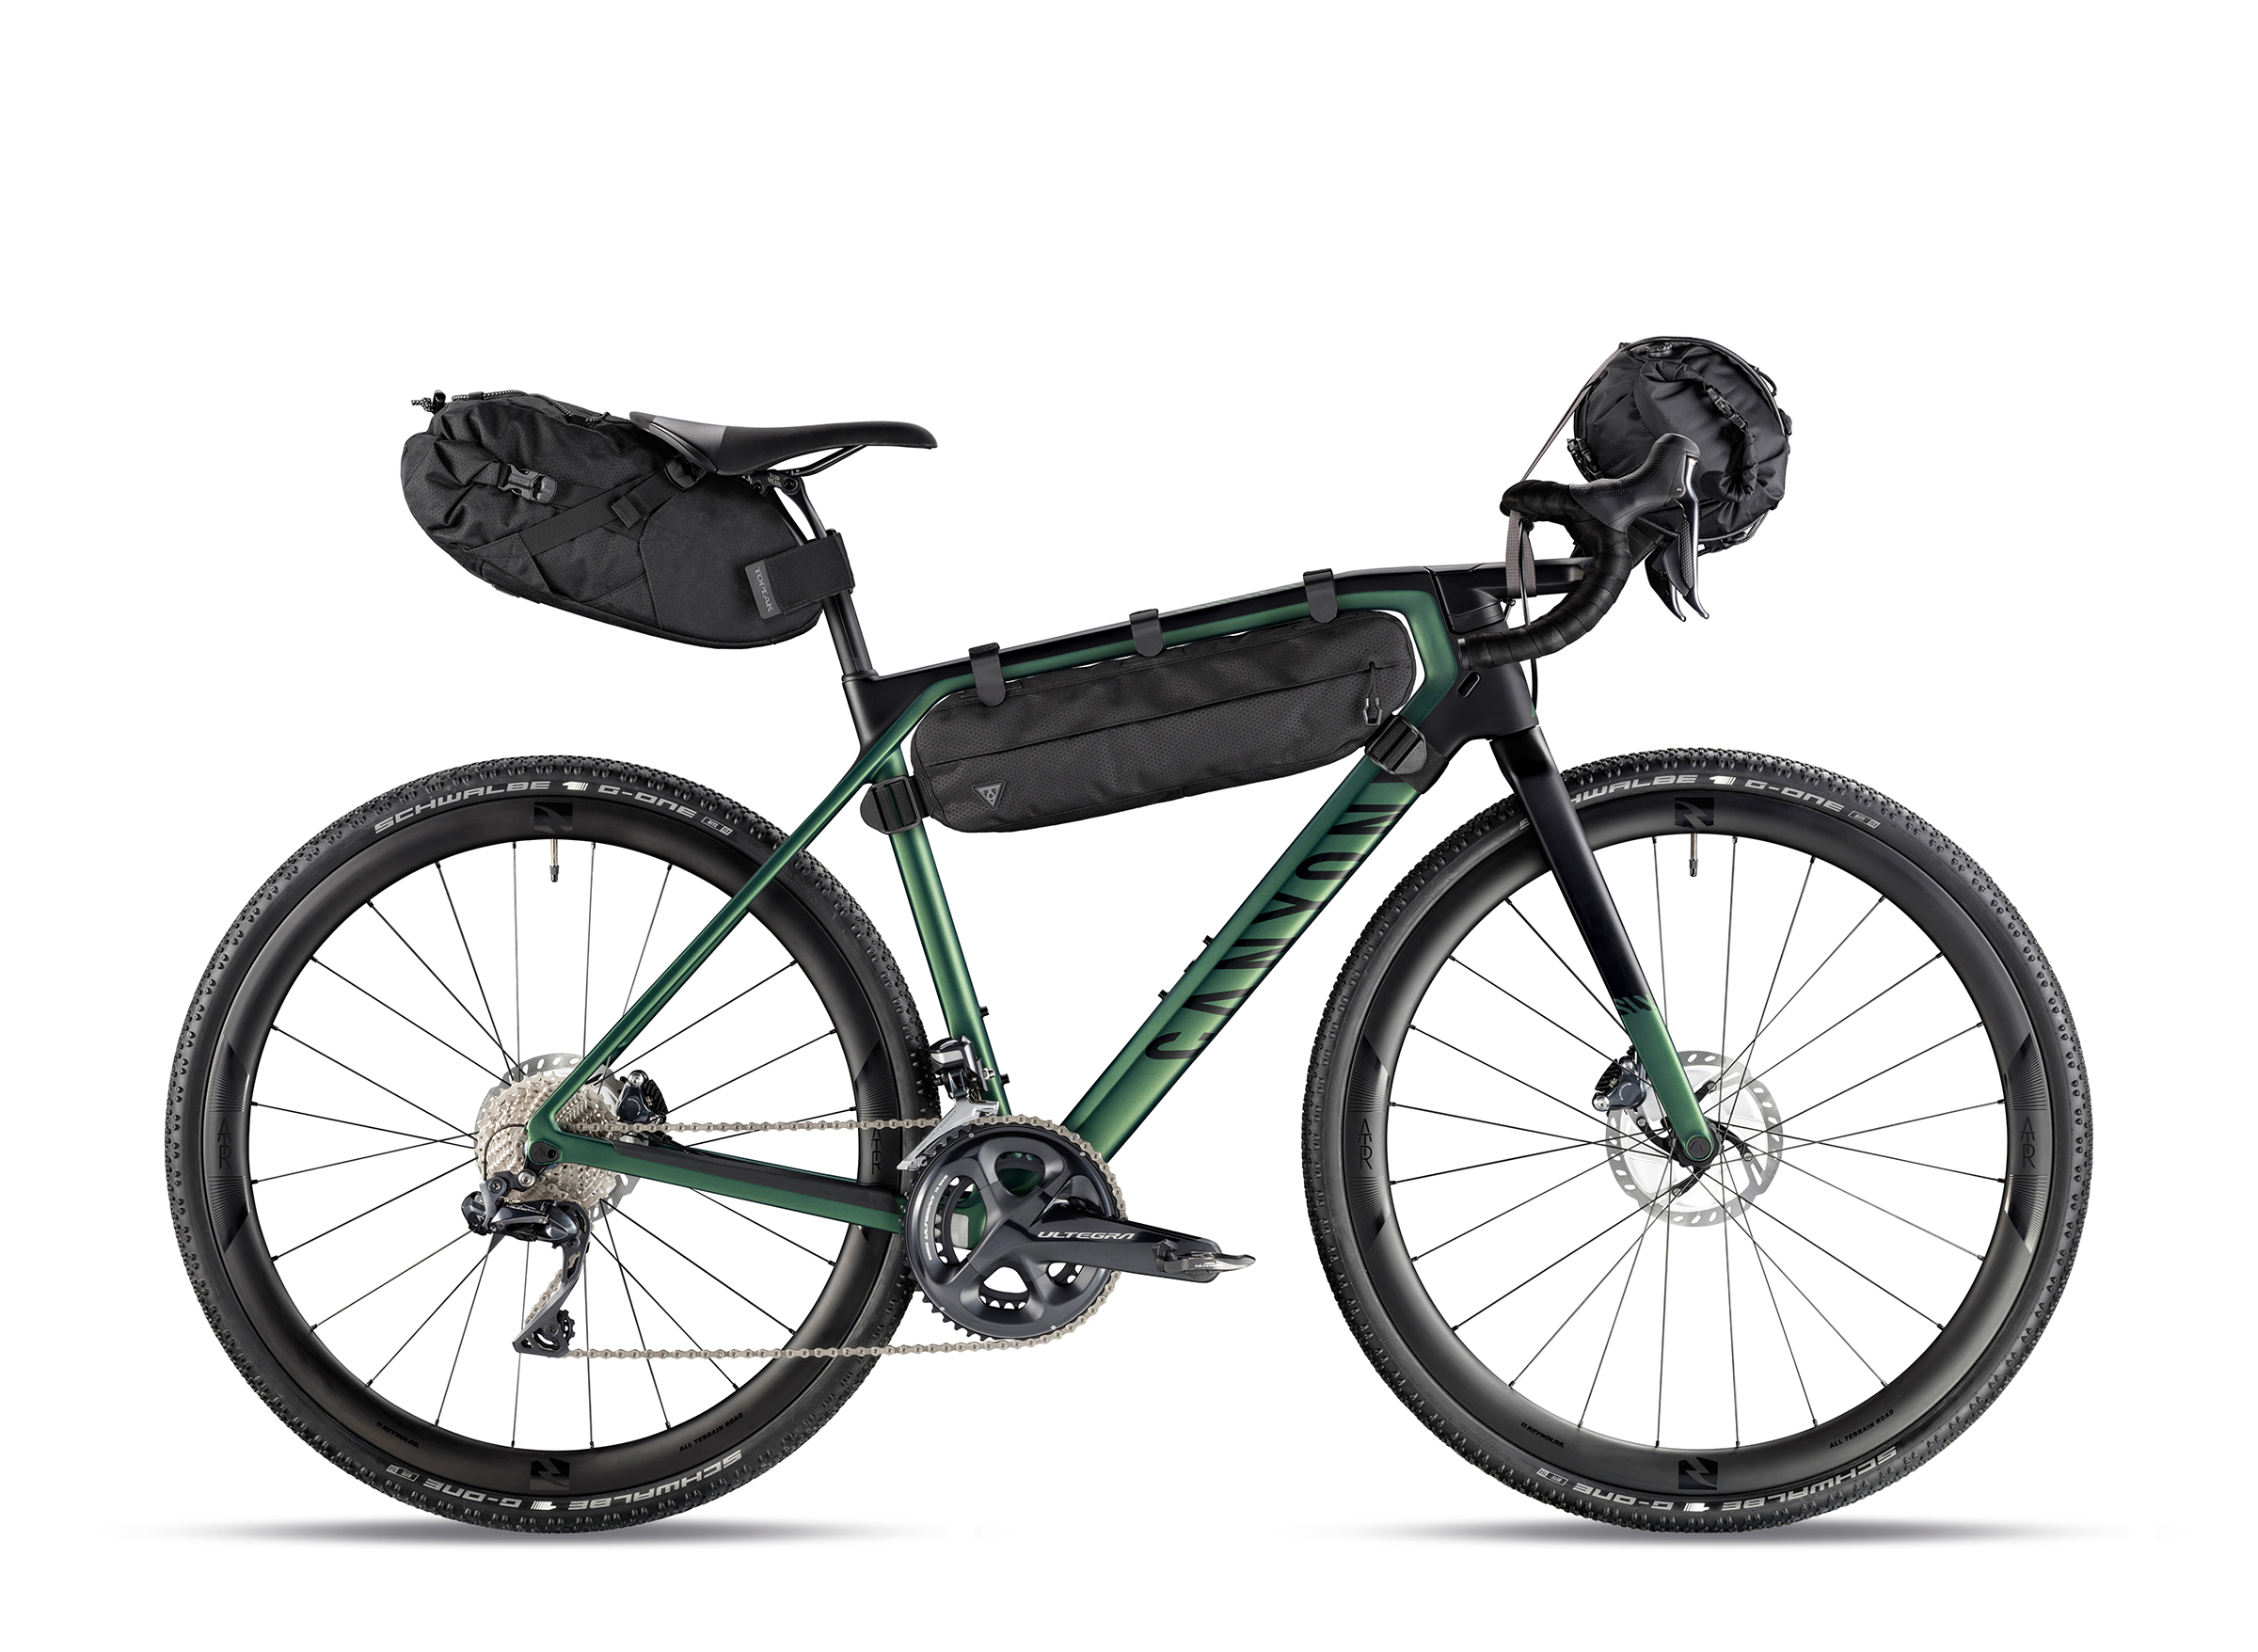 Canyon Grail CF SL 8.0 Di2 with Topeak camping bags